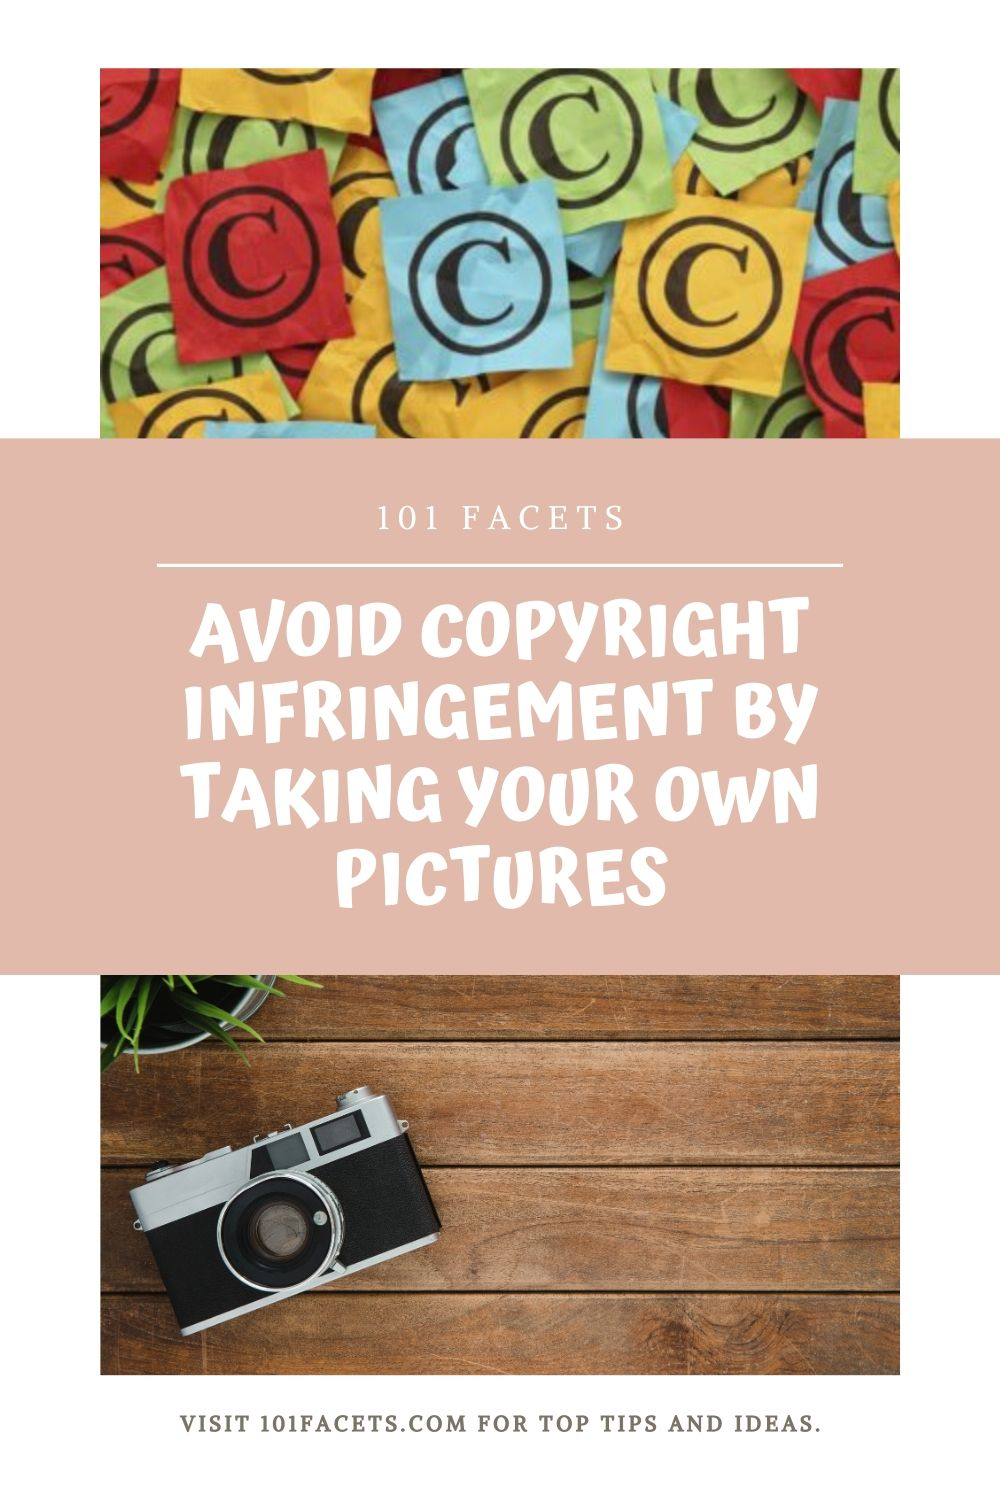 Avoid Copyright Infringement by Taking Your Own Pictures